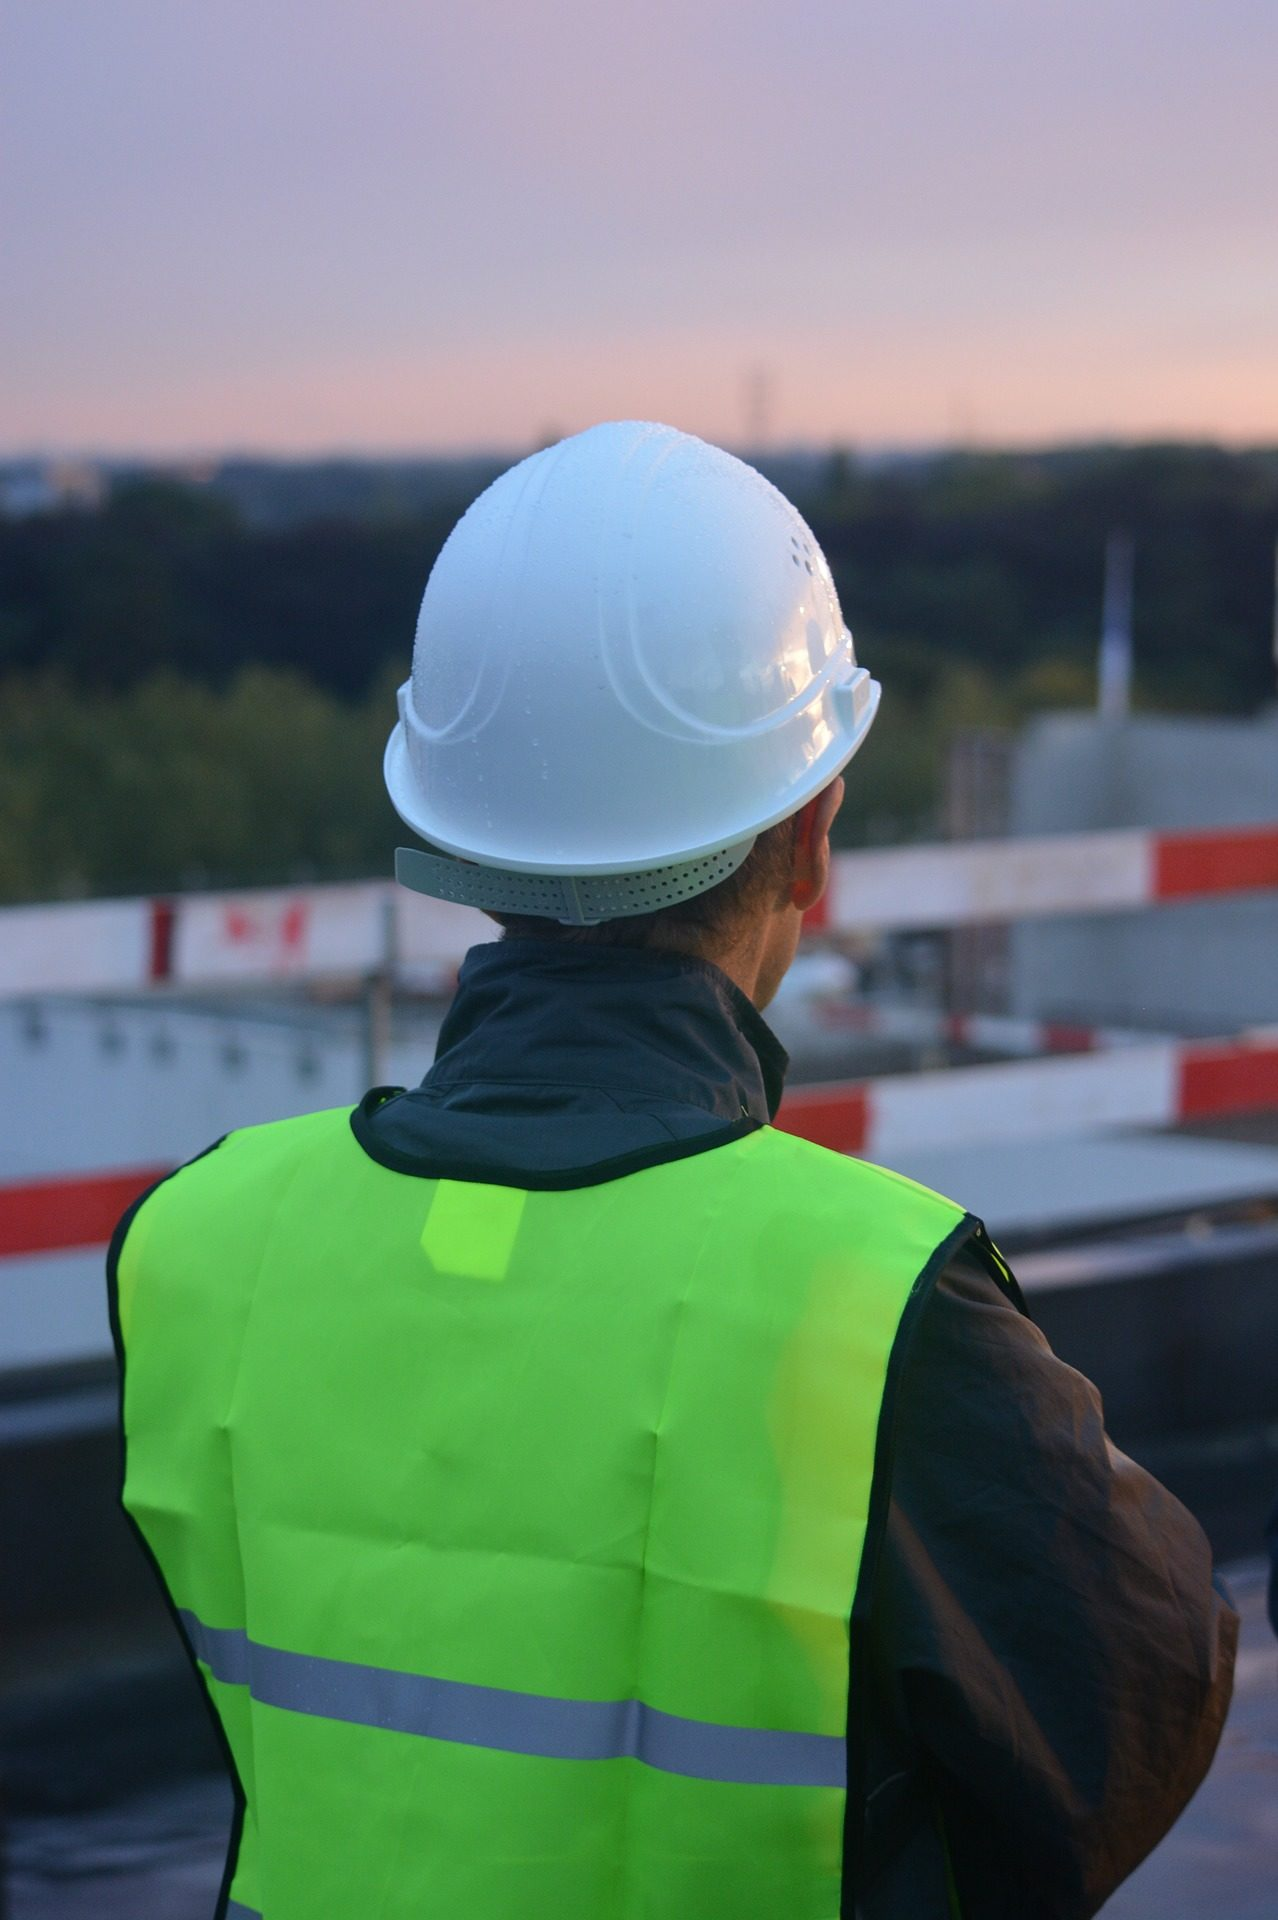 SAFETY ECONOMICS 101: Creating a safety culture